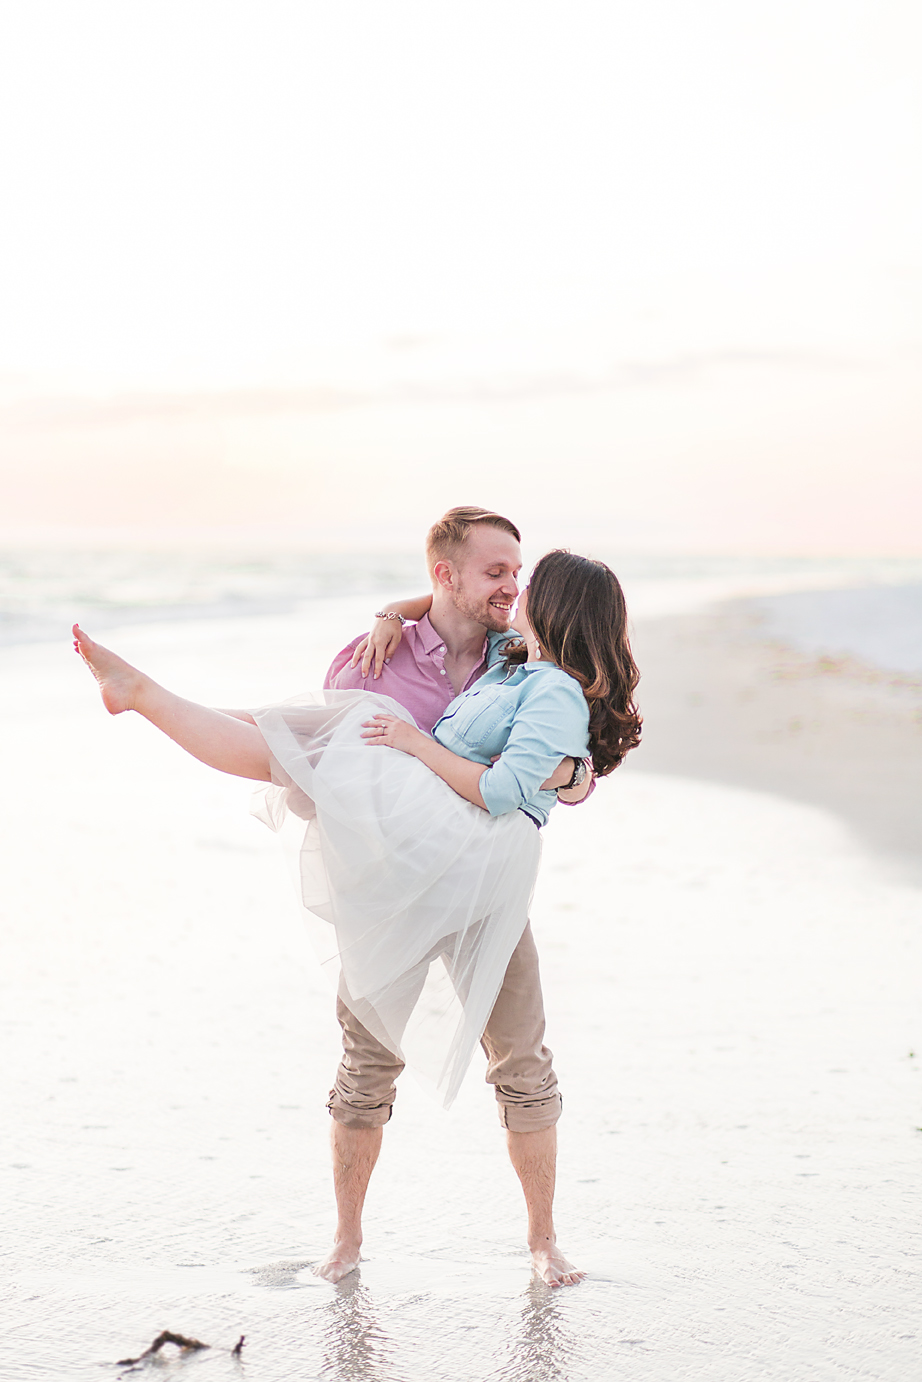 Dana + Brent - Sarasota Engagement Photographer - Marina Jack's Engagement - St. Armand's Engagement - Lido Key Engagement - Emily & Co. Photography - Destination Wedding Photography (17).jpg